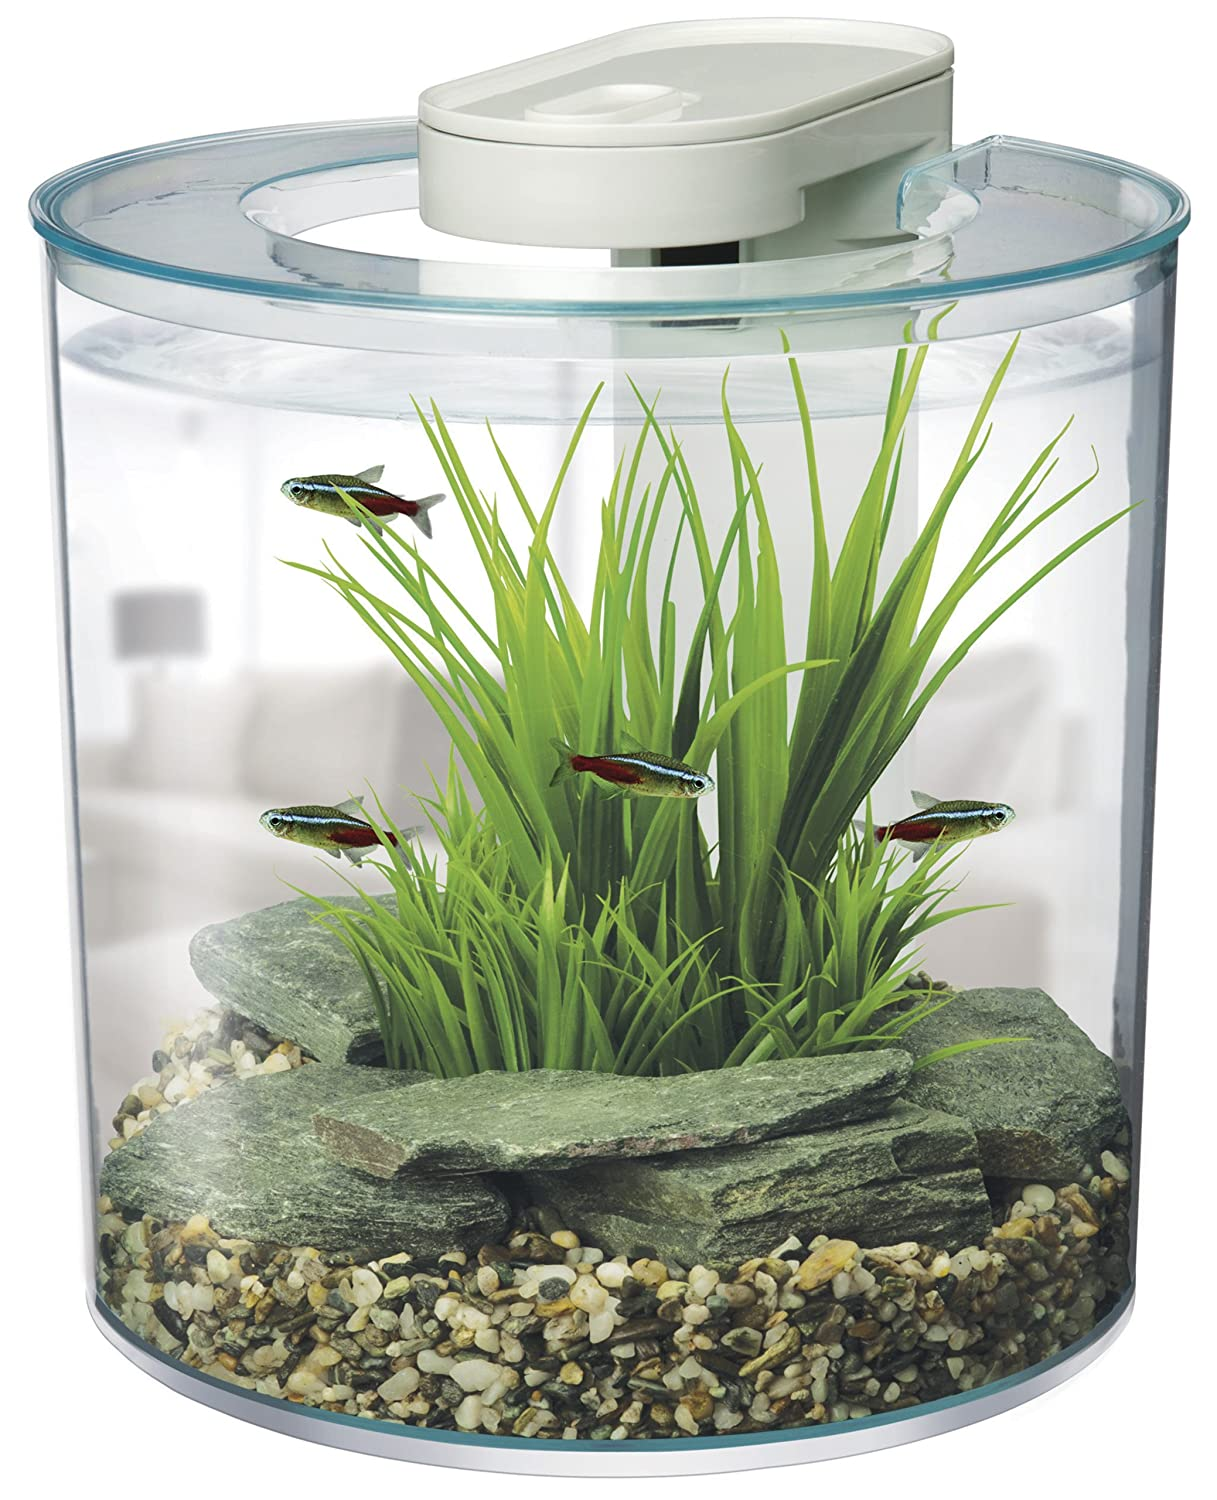 Cool Small Fish Tanks 886x1024 Jpg Pictures to pin on Pinterest